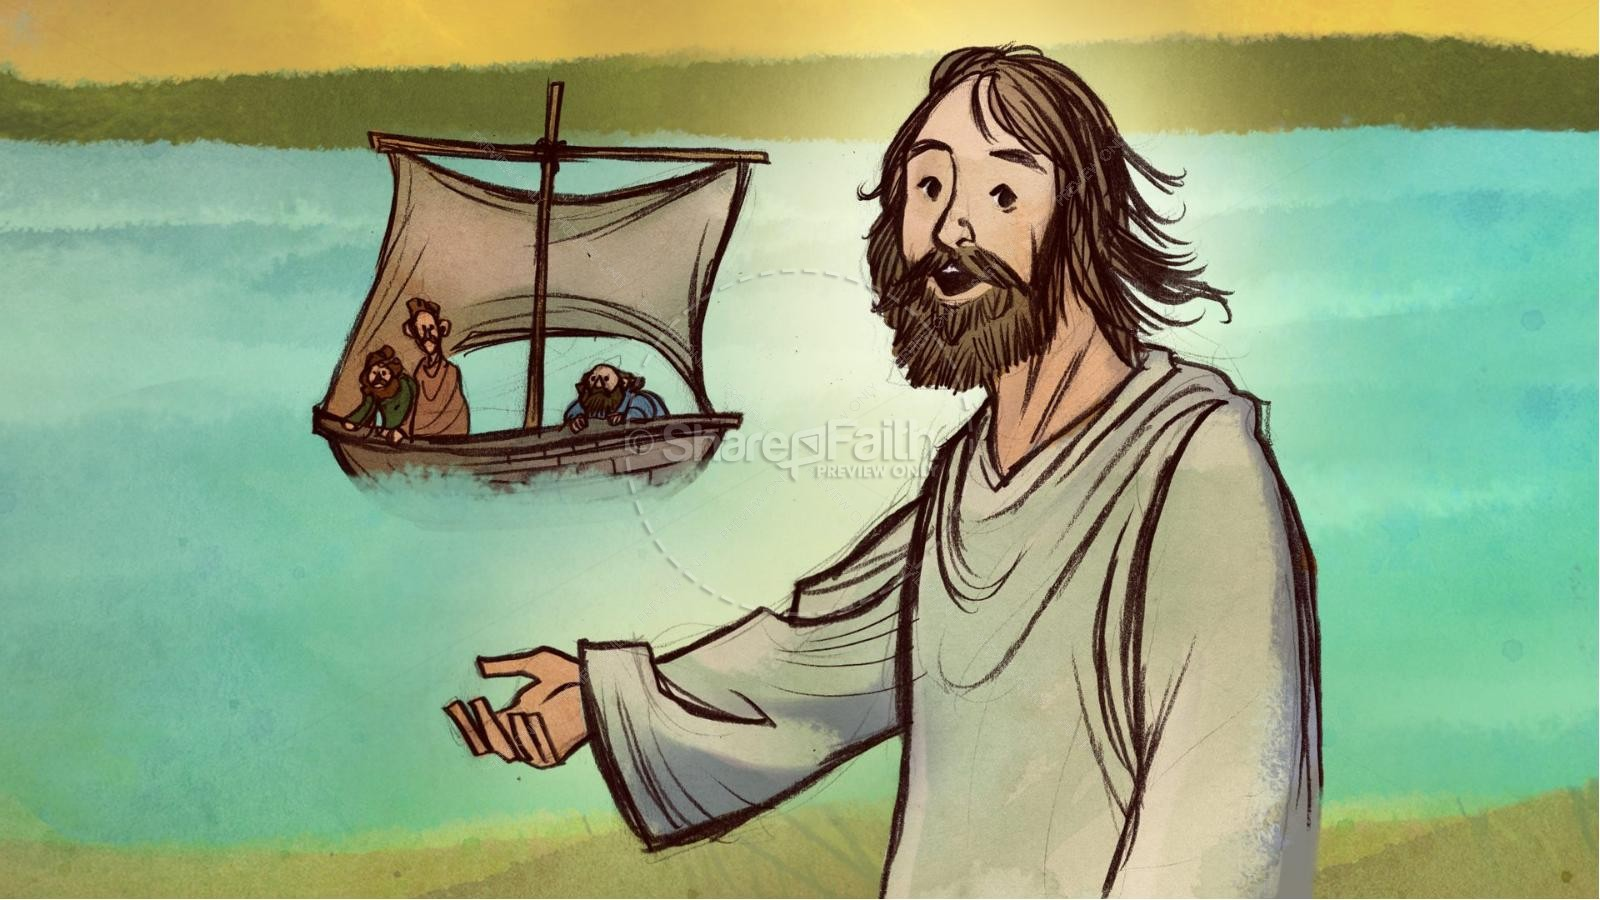 Jesus Chooses His 12 Disciples Kids Bible Story | Kids Bible Stories